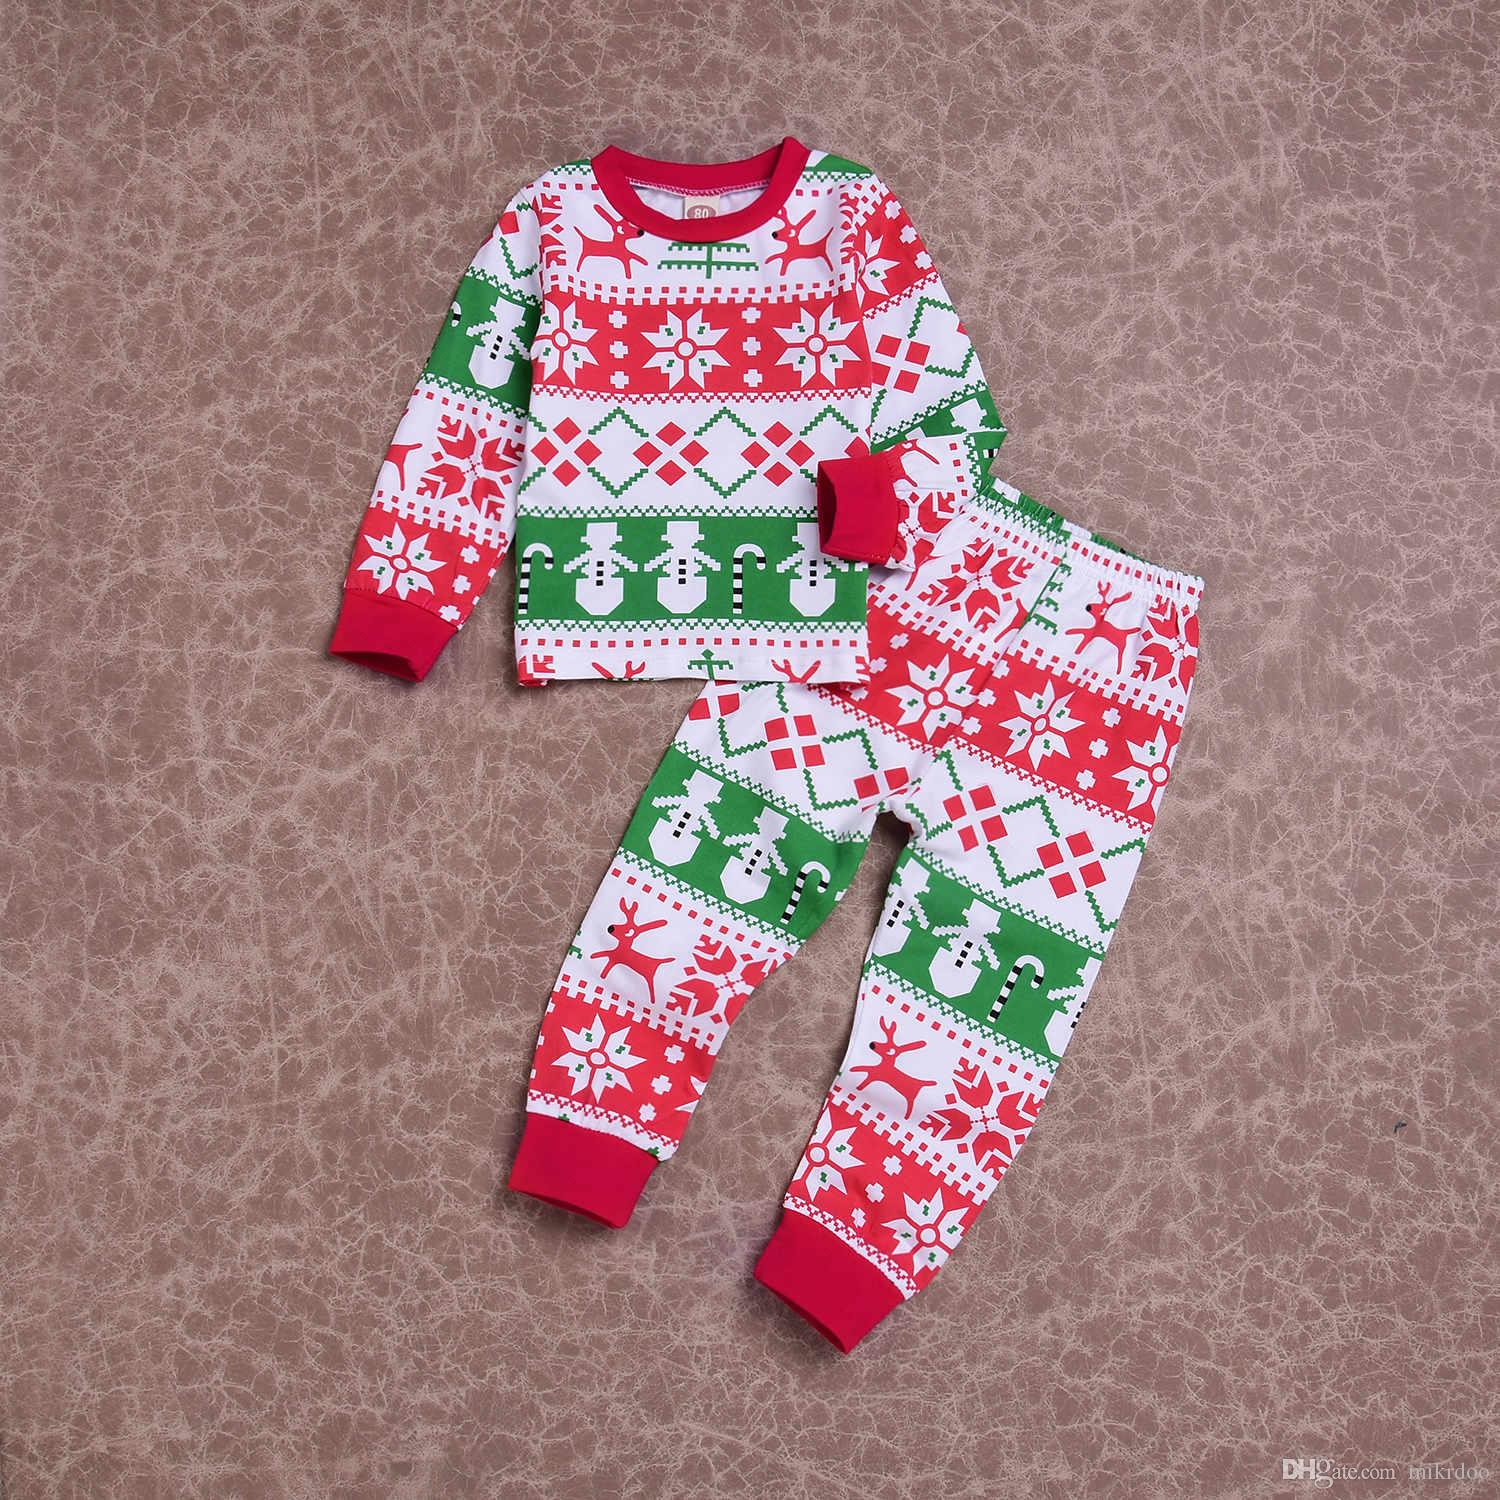 Mikrdoo Christmas Toddler Baby Boy Girl Pajamas Outfits Kids Cotton Homewear Sleepwear Clothing Set For Age 1-6T